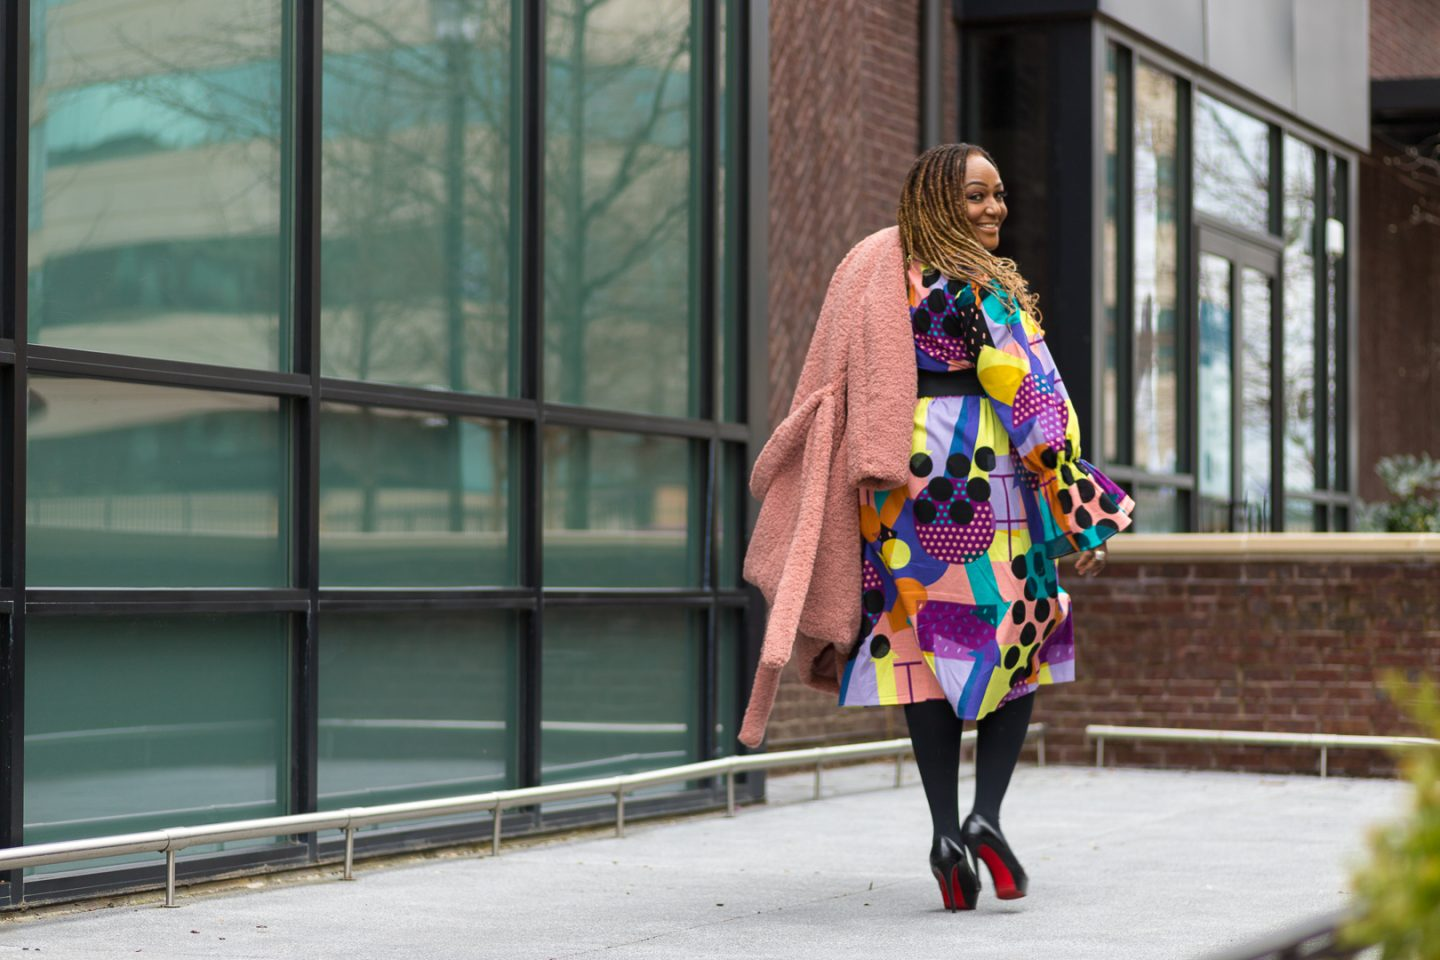 Nikki Free wearing colorful print dress from SHEIN with Teddy Coat over shoulder